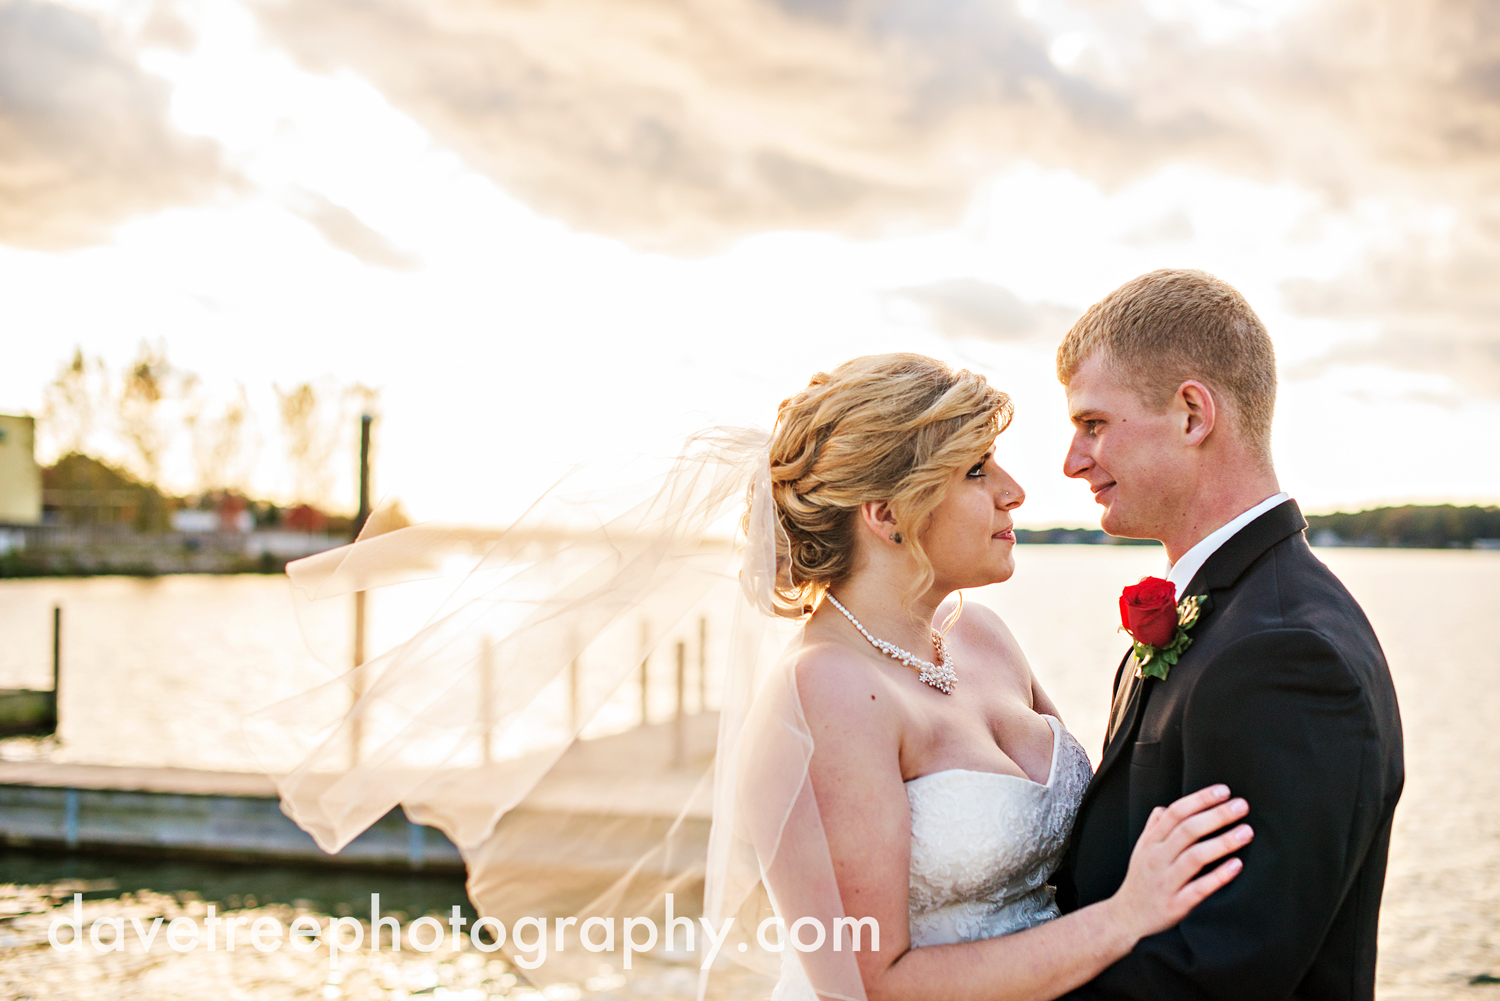 holland_wedding_photographer_17.jpg